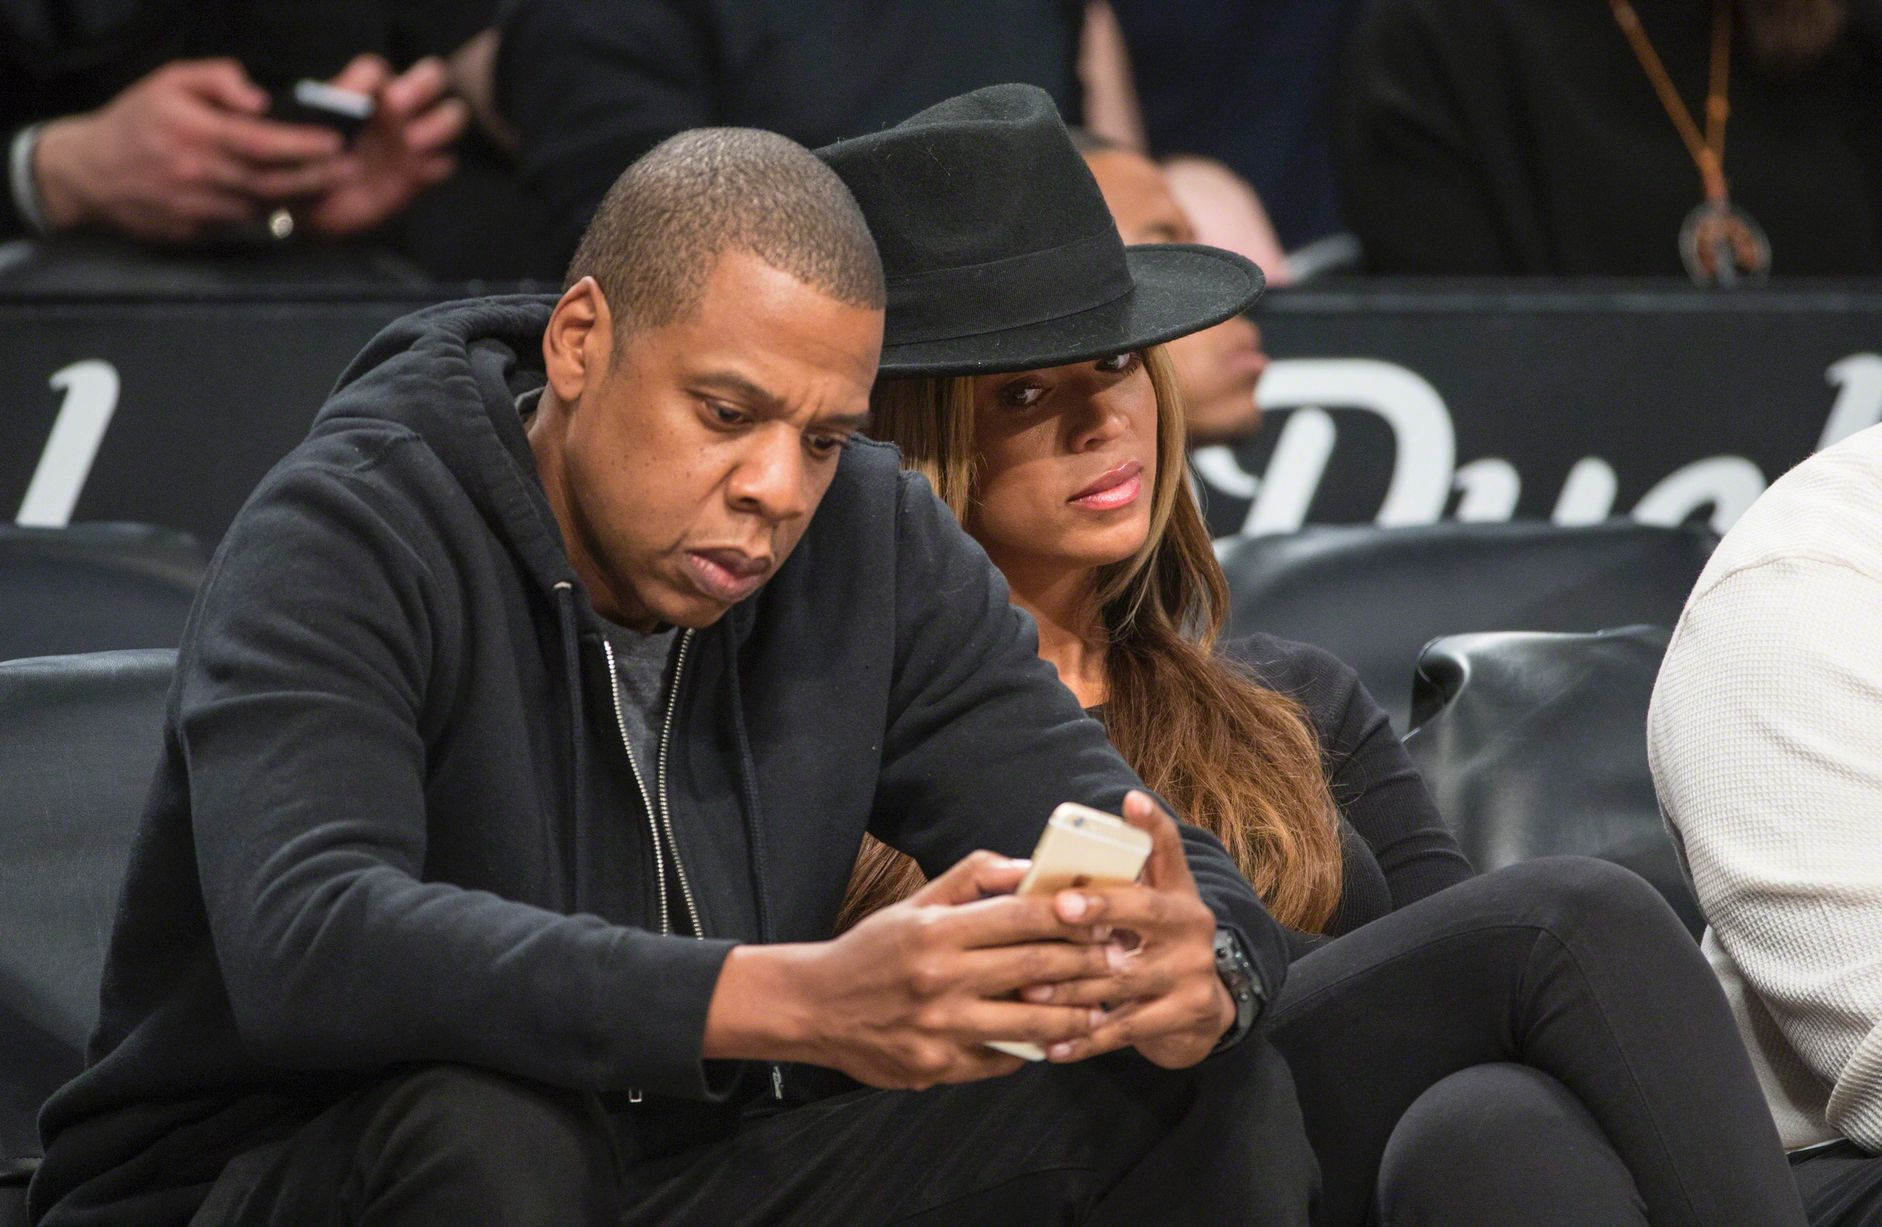 Jay-Z-and-his-wife-Beyonce-sit-courtside-during-the-Brooklyn-Nets-vs-the-Houston-Rockets-2015